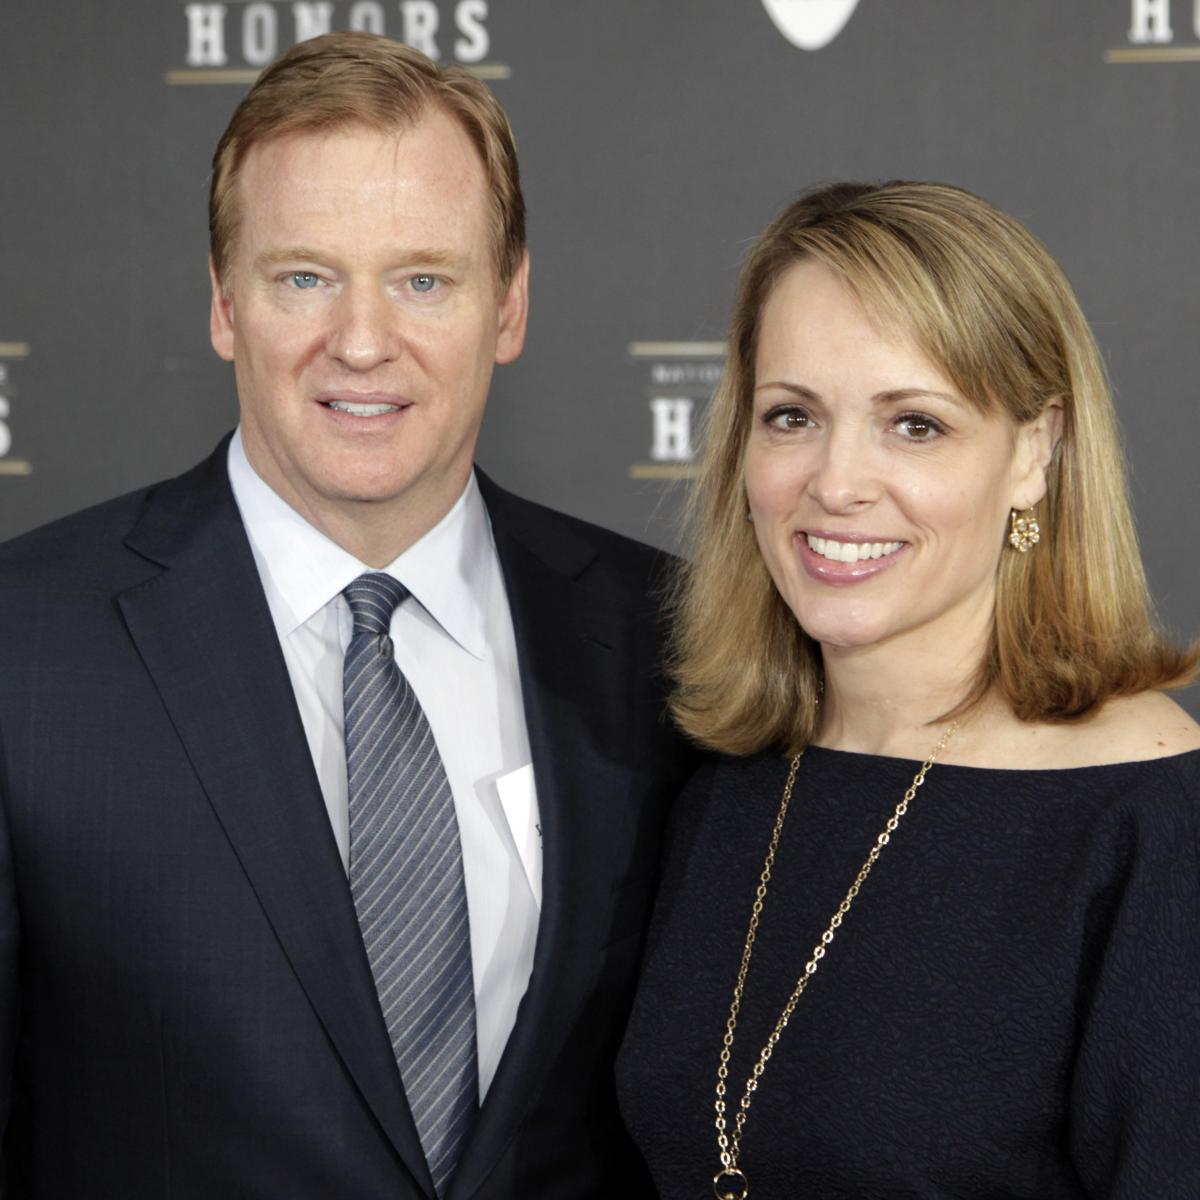 Roger Goodell S Wife Jane On Colin Kaepernick S Grievance